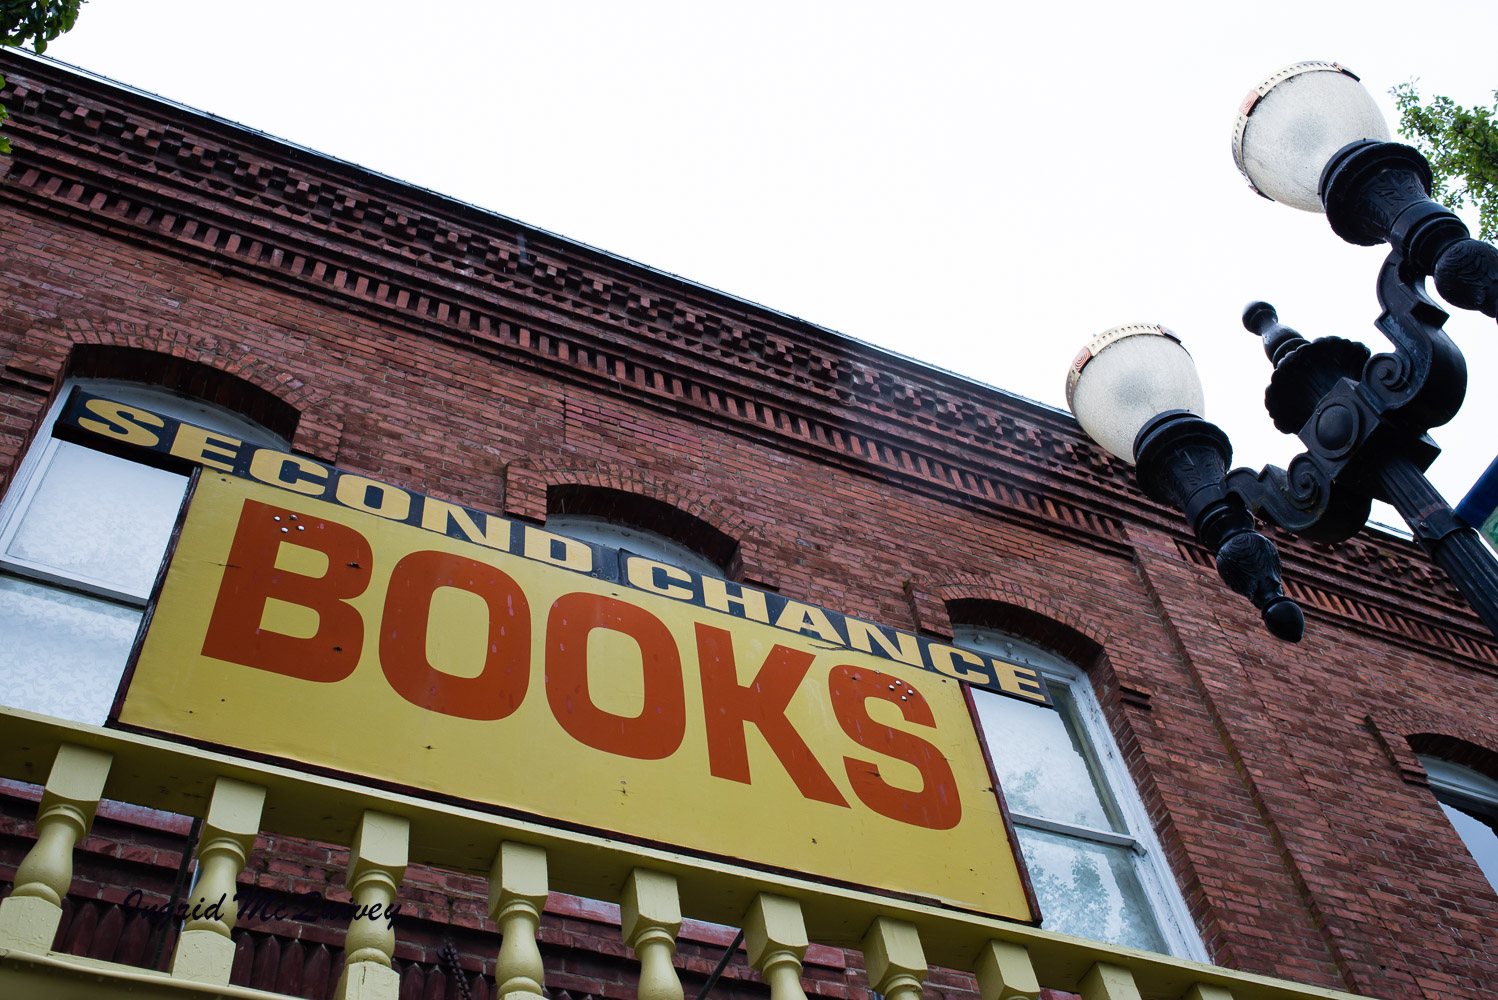 One of my favorite things to do is frequent secondhand book shops and look for photography art books. Second Chance Books was located on Independence, Oregon's, historic main street.